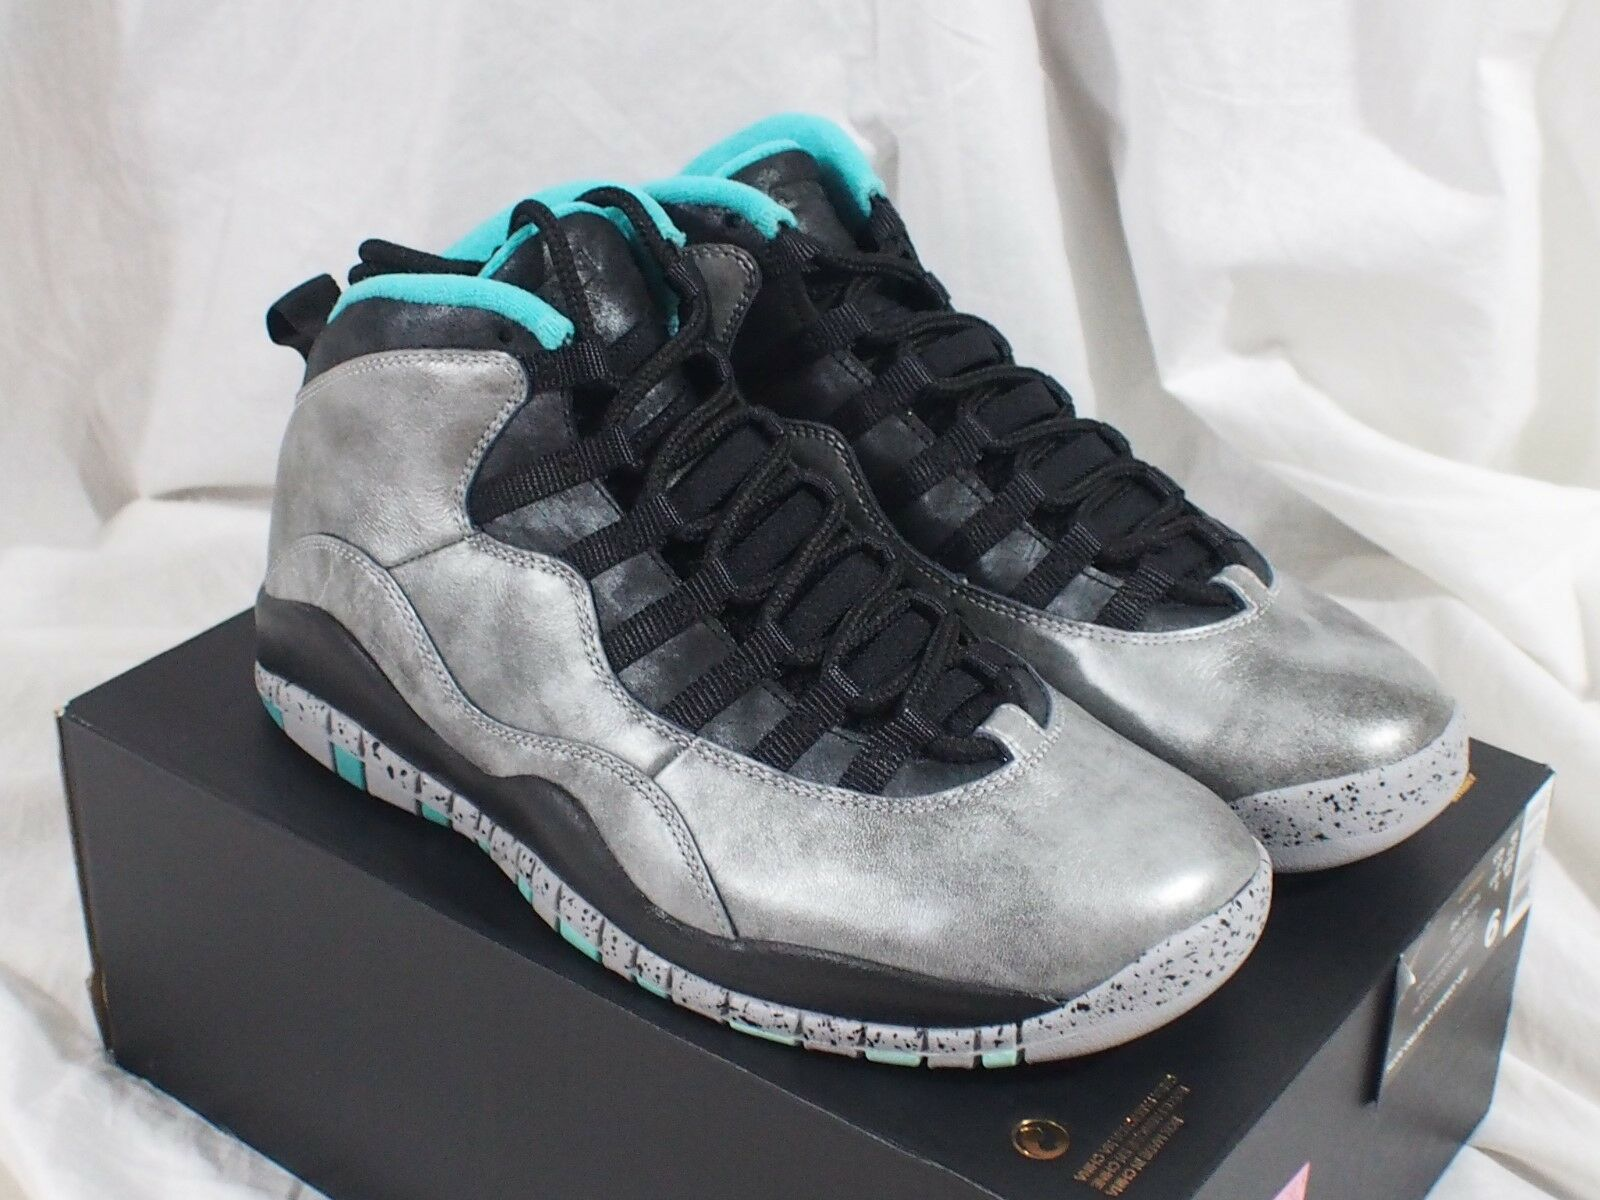 Nike Air Jordan 10 X Lady Liberty 30th Anniversary